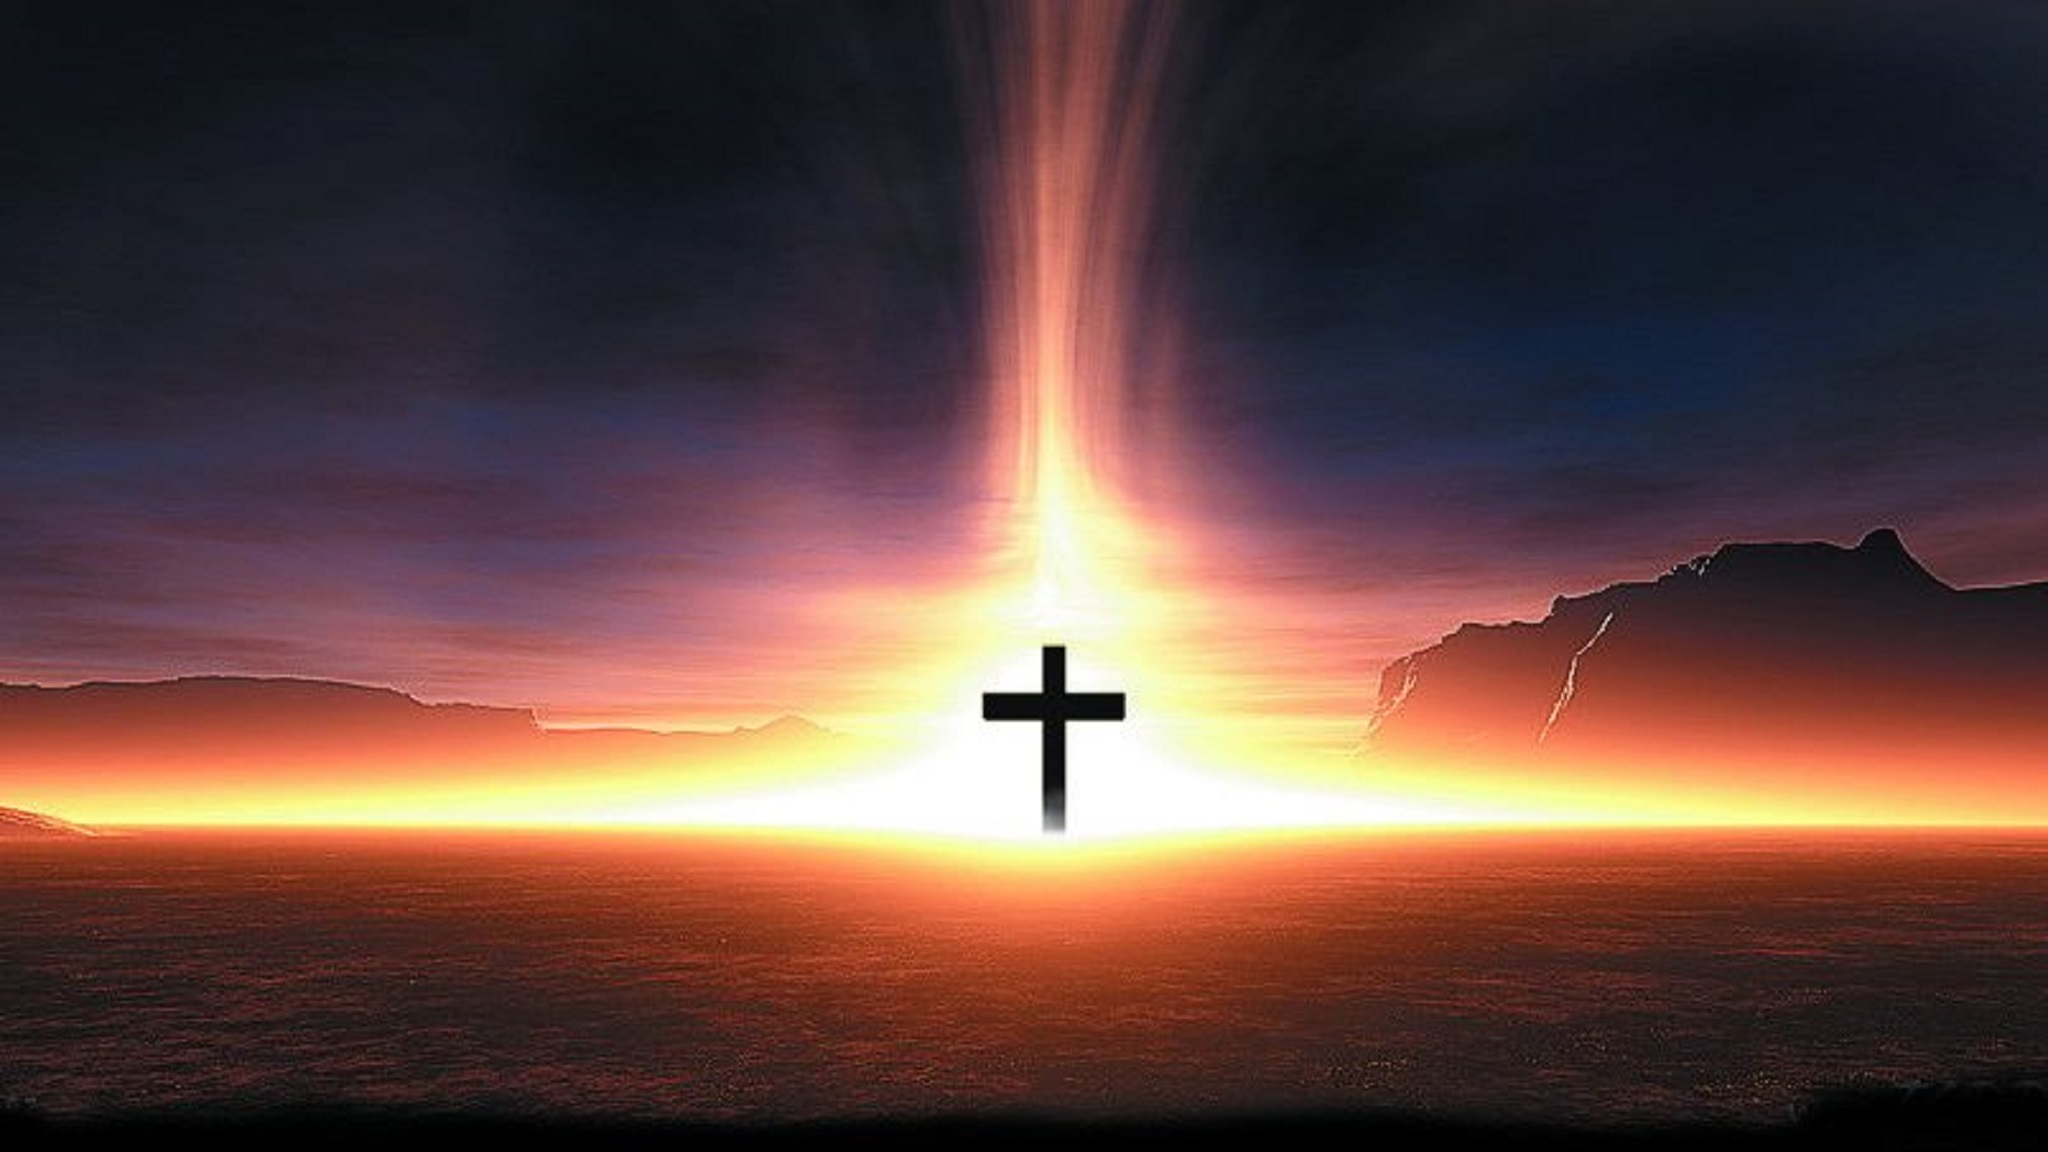 A TORCH OF HEAVEN